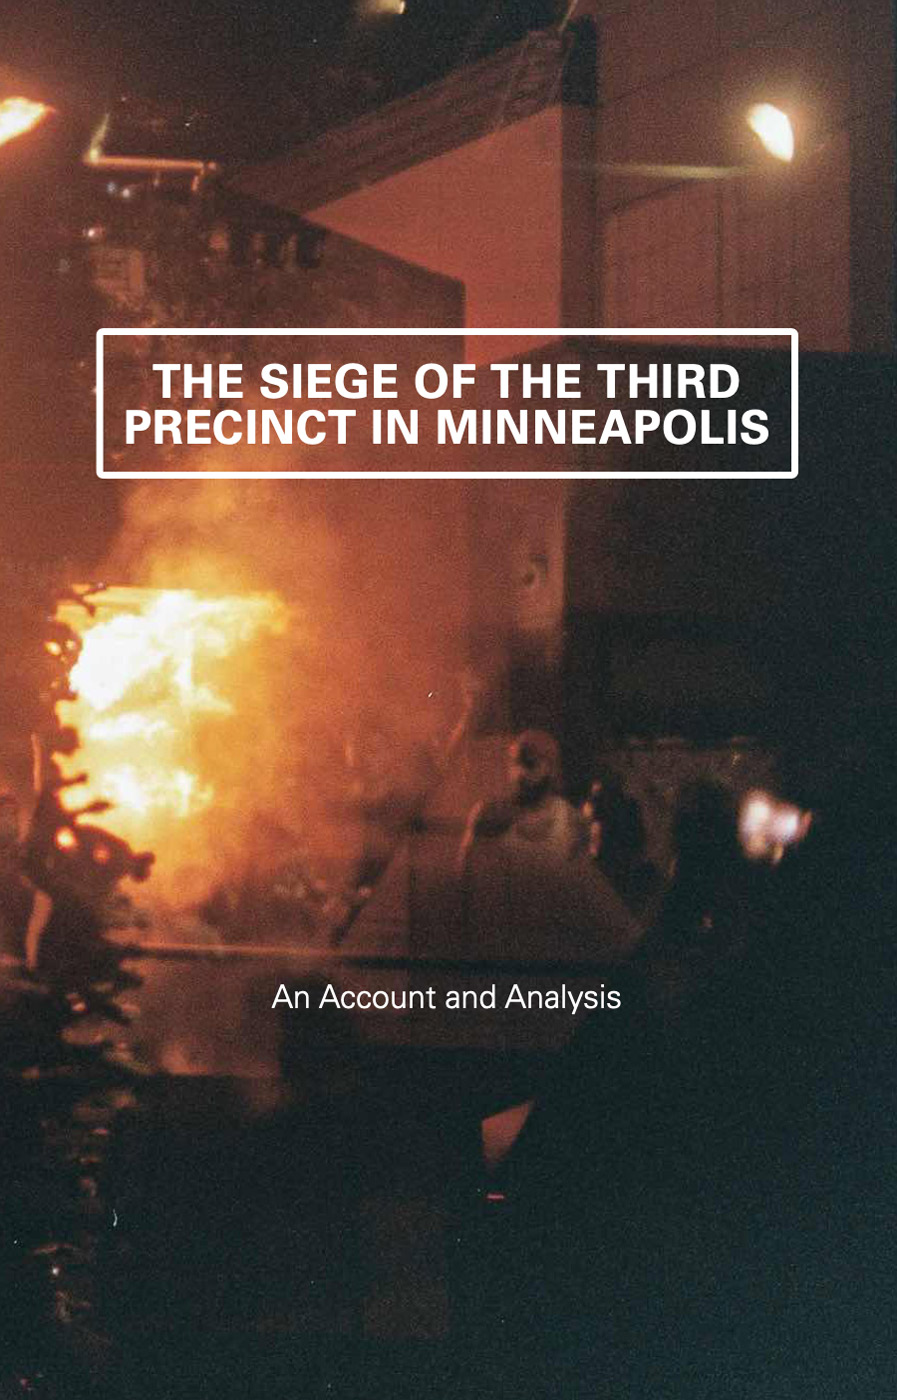 Photo of 'The Siege of the Third Precinct in Minneapolis' front cover